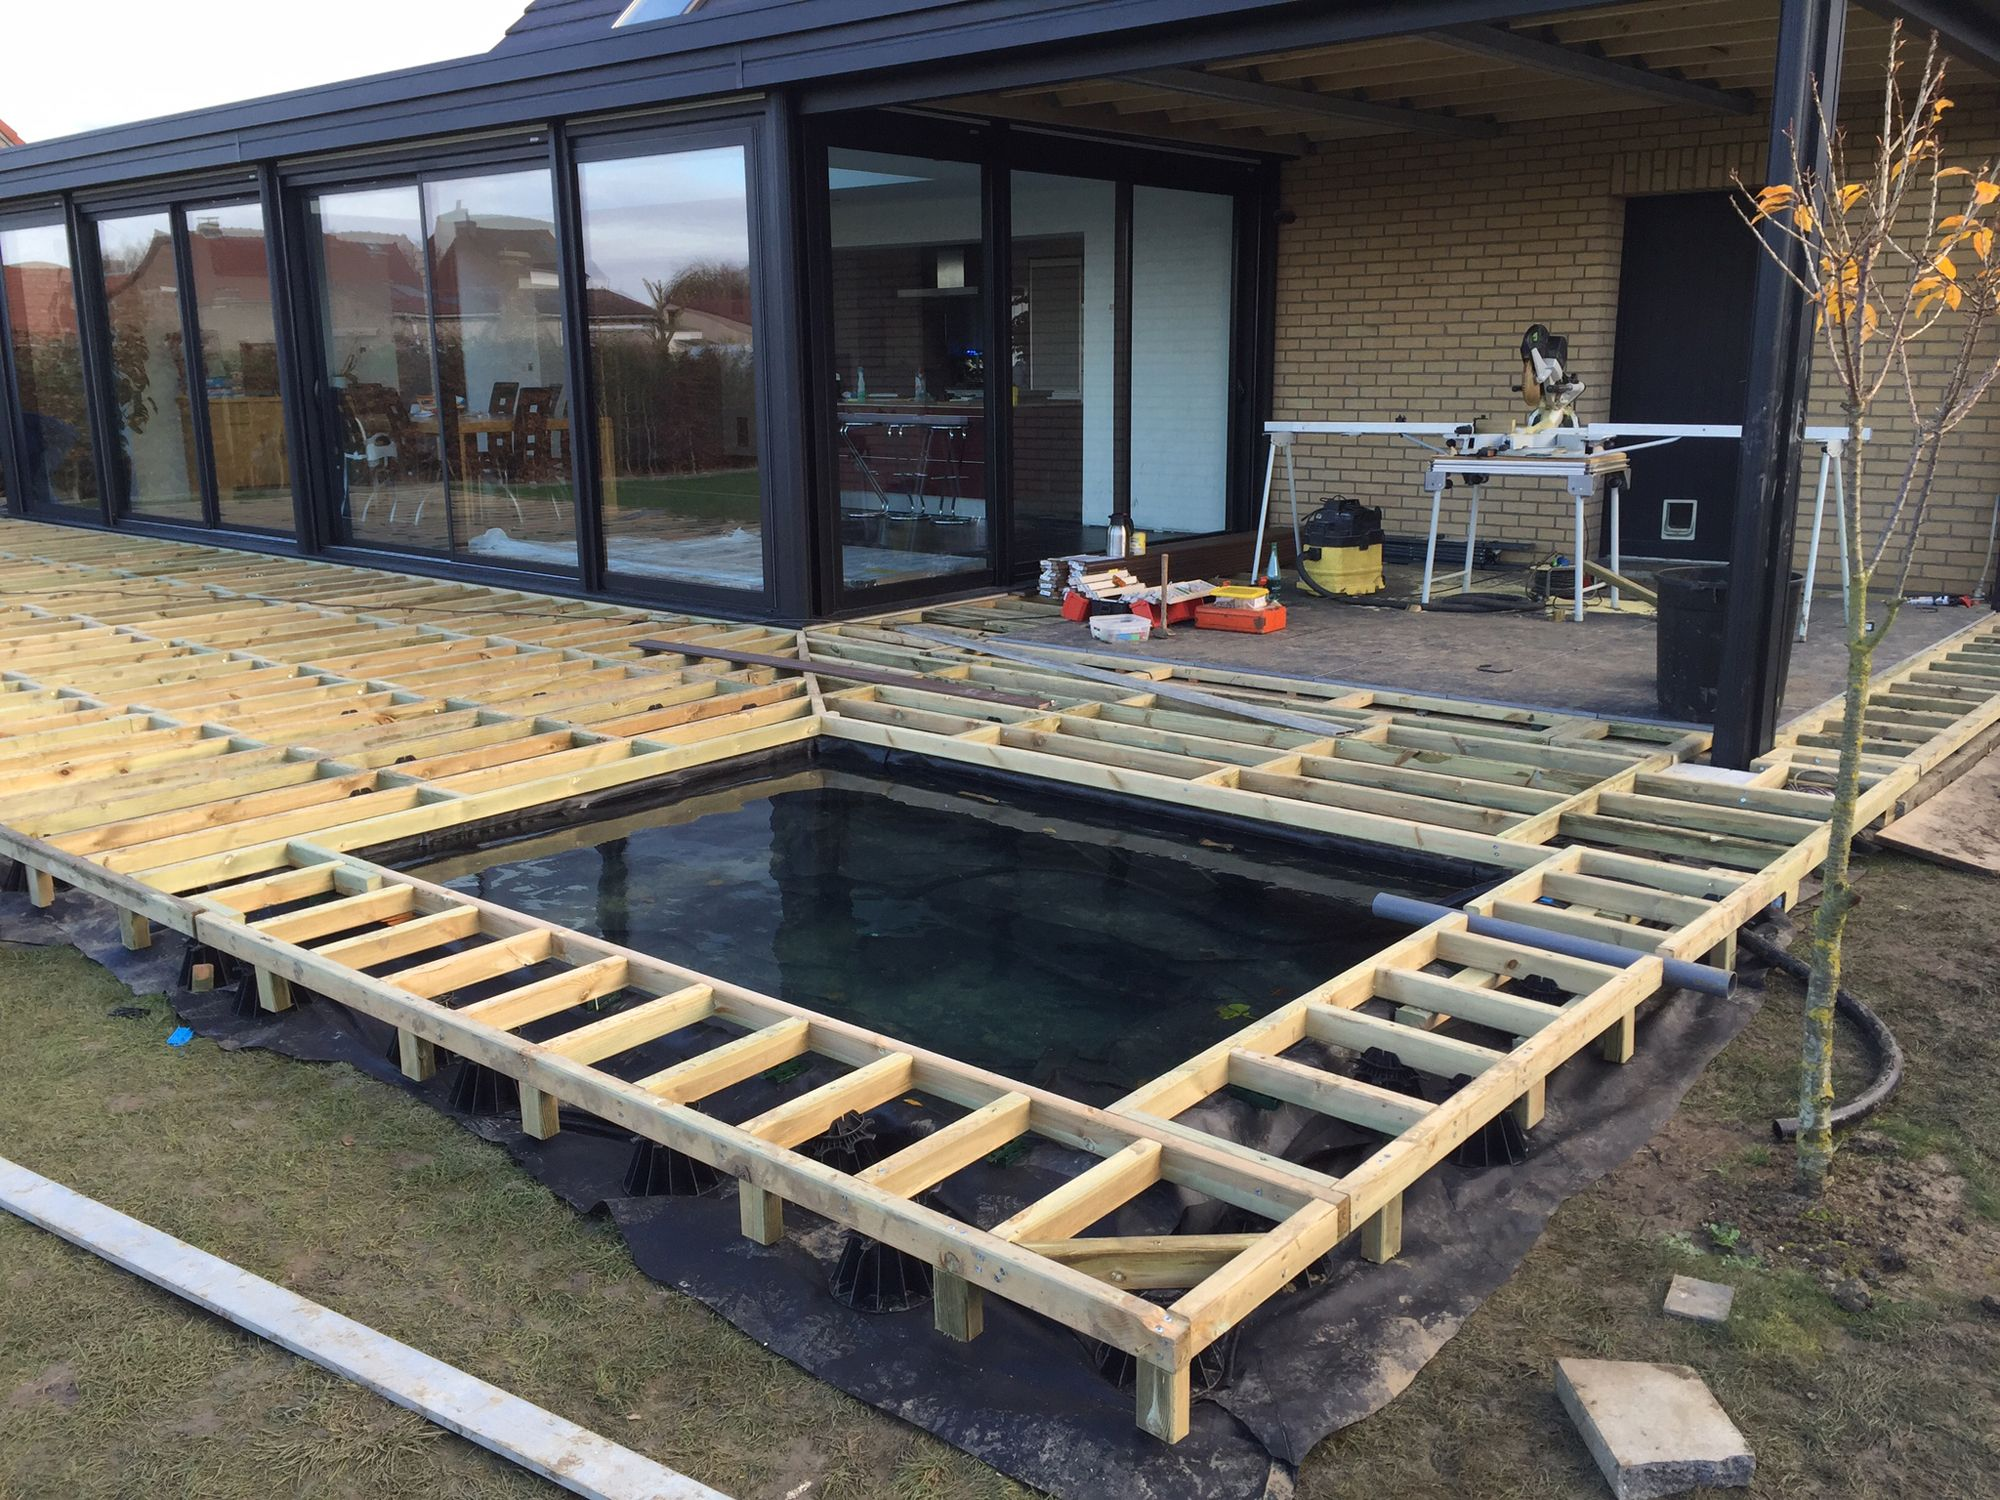 Am nagement jardin modification terrasse terrasse en for Piscine jardin arras